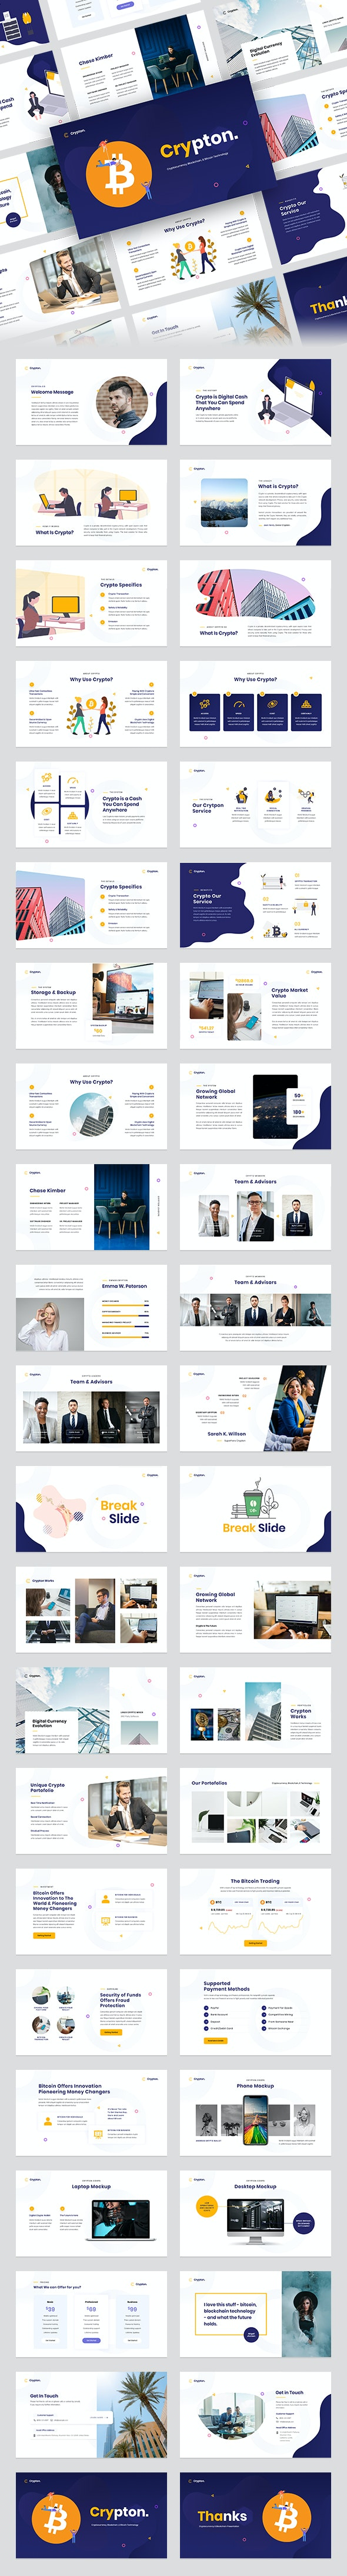 Crypton - Cryptocurrency & Blockchain PowerPoint Template - Business PowerPoint Templates